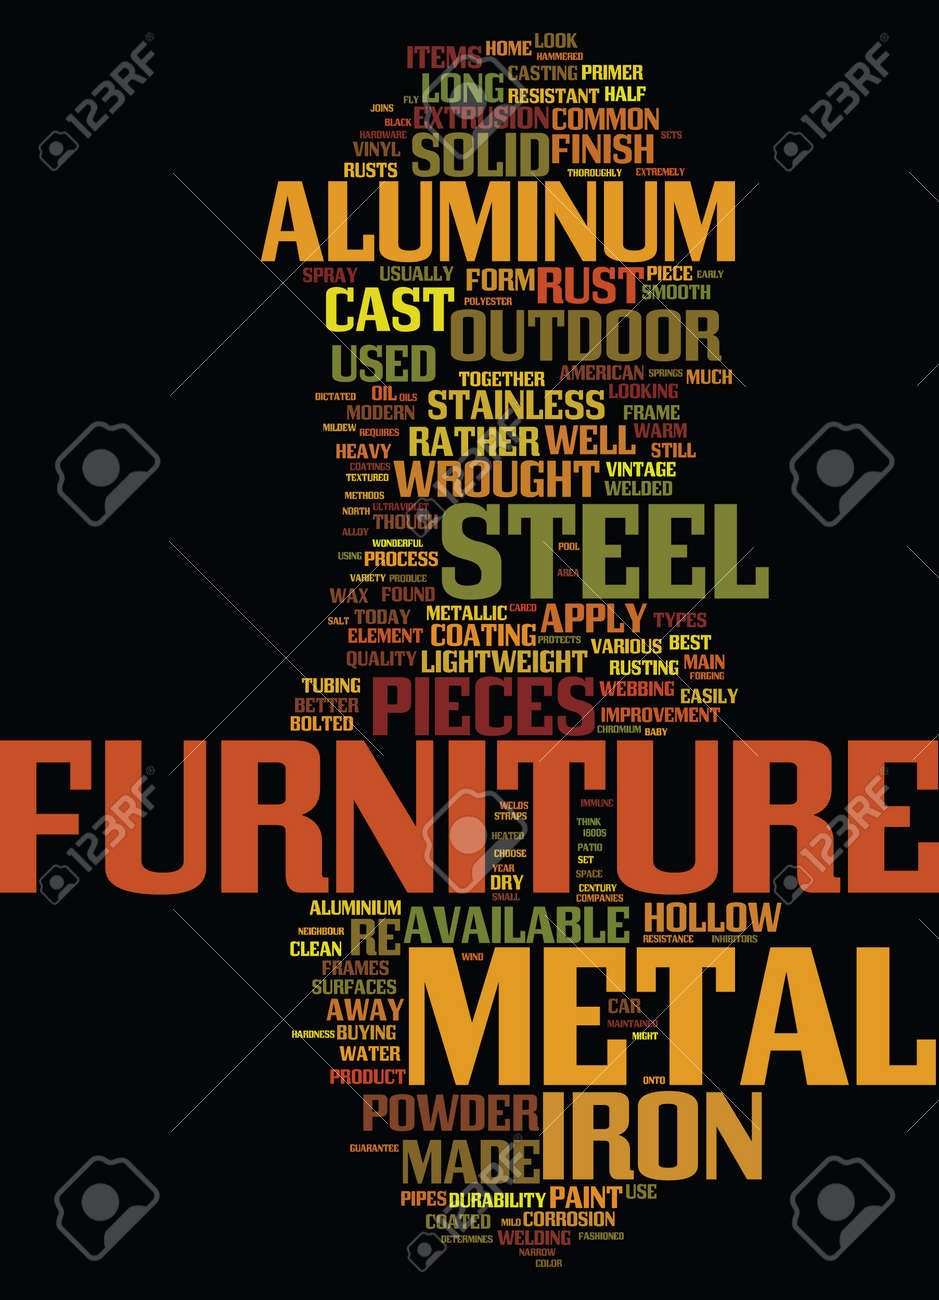 METAL OUTDOOR FURNITURE EXPLAINED Text Background Word Cloud Concept Stock Vector